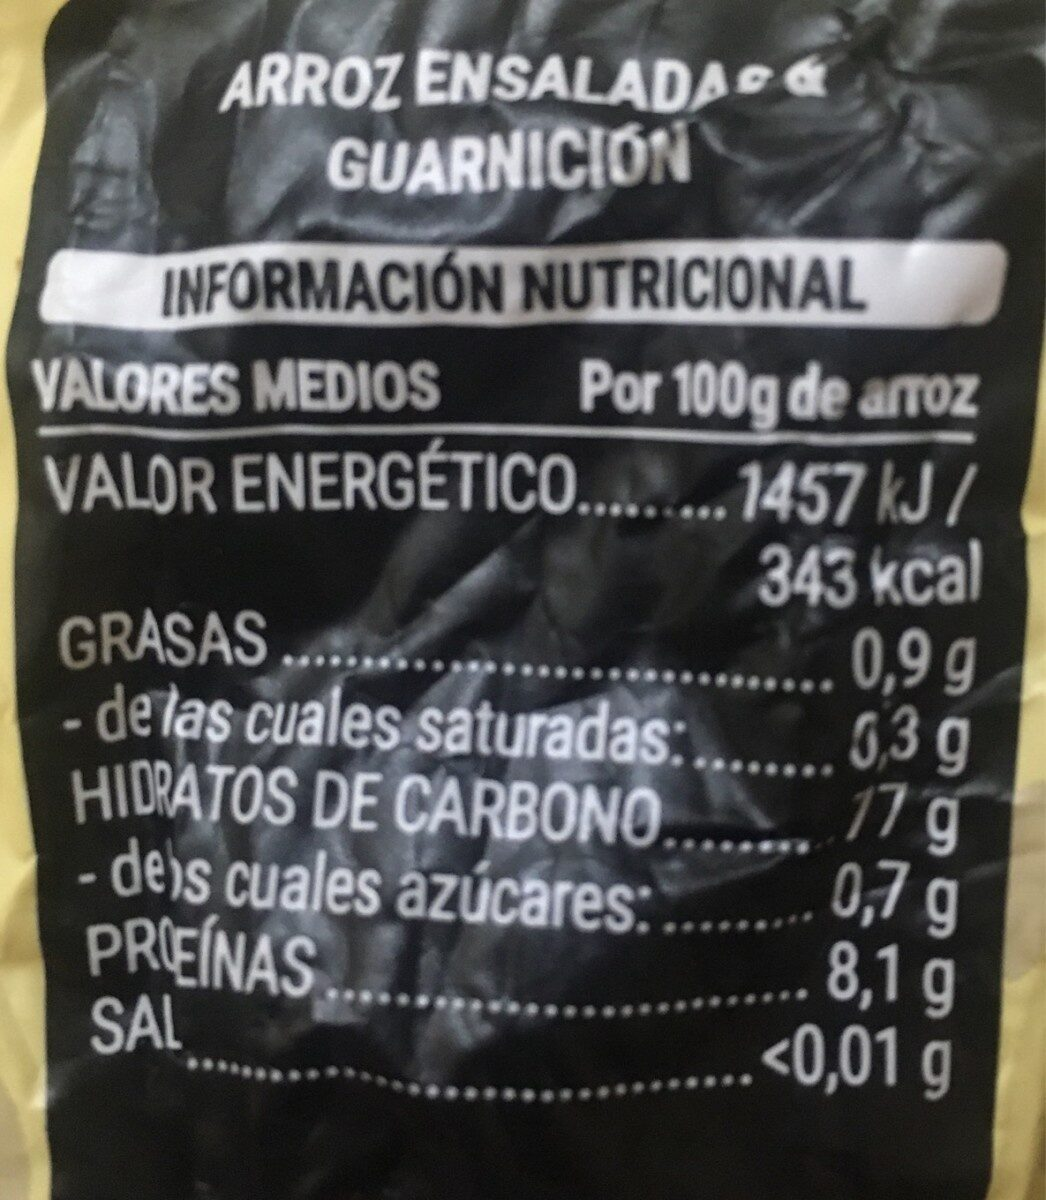 Mezcla de arroces Especial ensaladas y guarnición - Nutrition facts - es